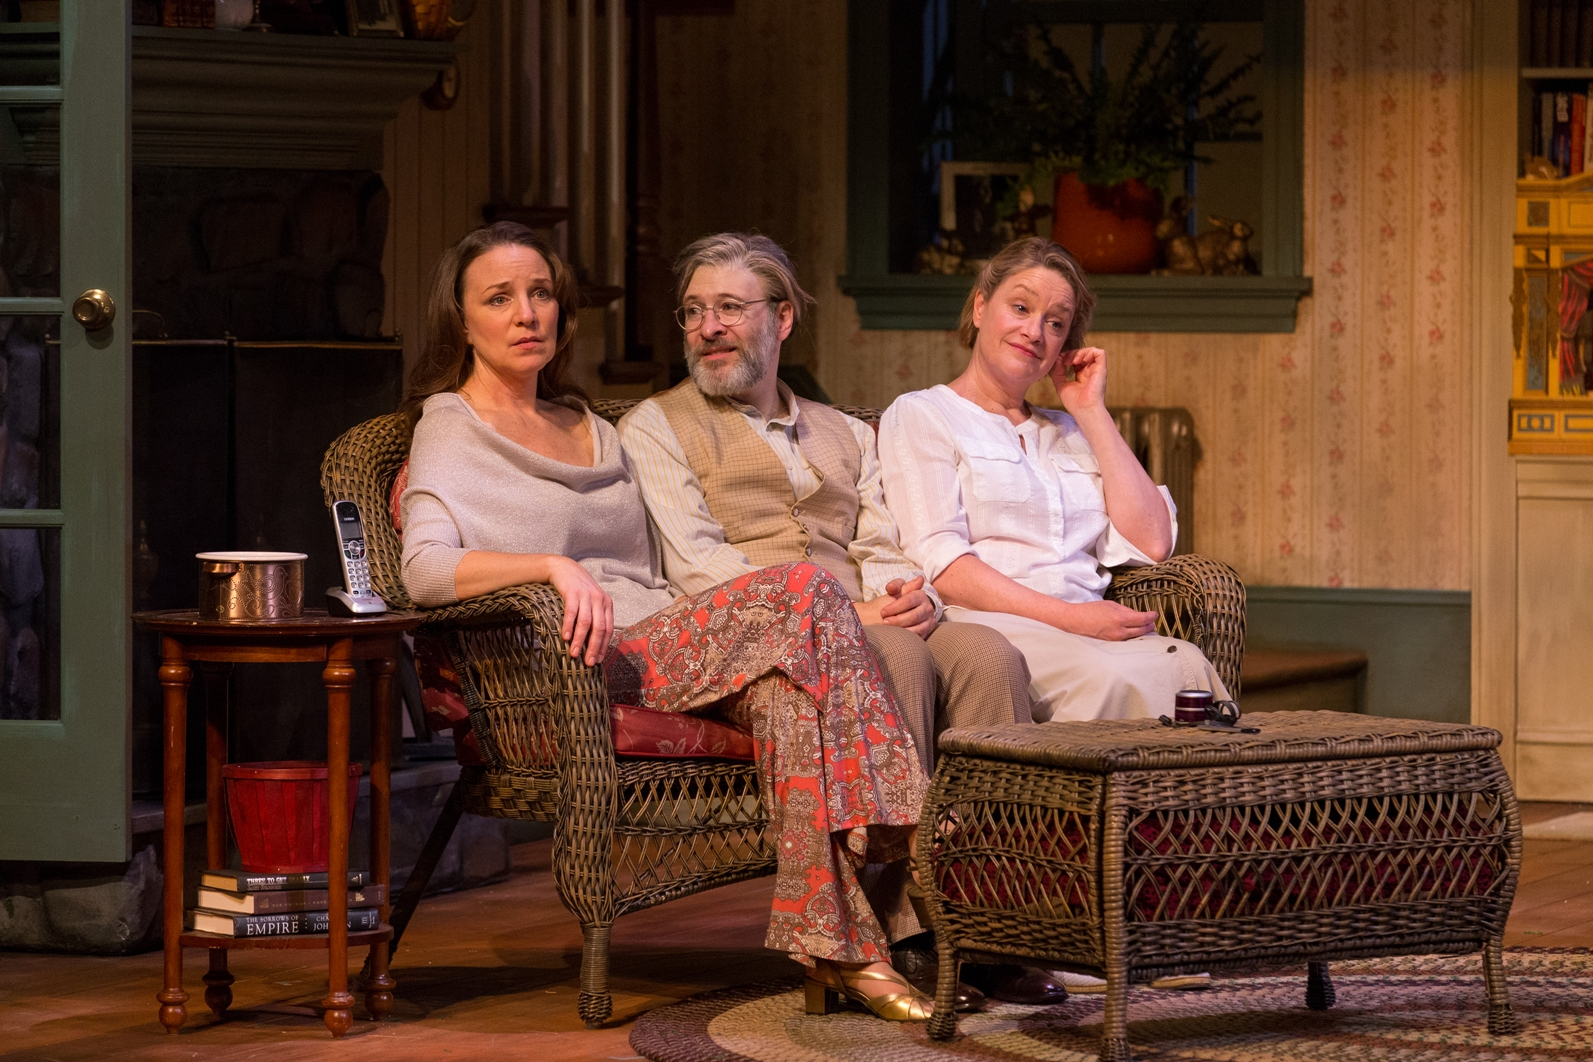 Grace Gonglewski as Masha, Kraig Swartz as Vanya, and Deirdre Madigan as Sonia in Philadelphia Theatre Company's VANYA AND SONIA AND MASHA AND SPIKE (Photo credit: Mark Garvin)